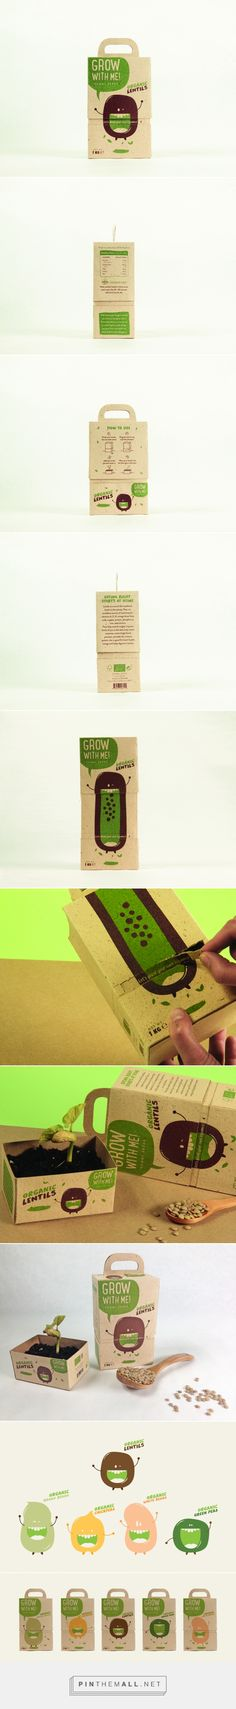 Grow With Me! packaging design by students encourages kids to eat healthily - http://www.packagingoftheworld.com/2016/07/grow-with-me-student-project.html